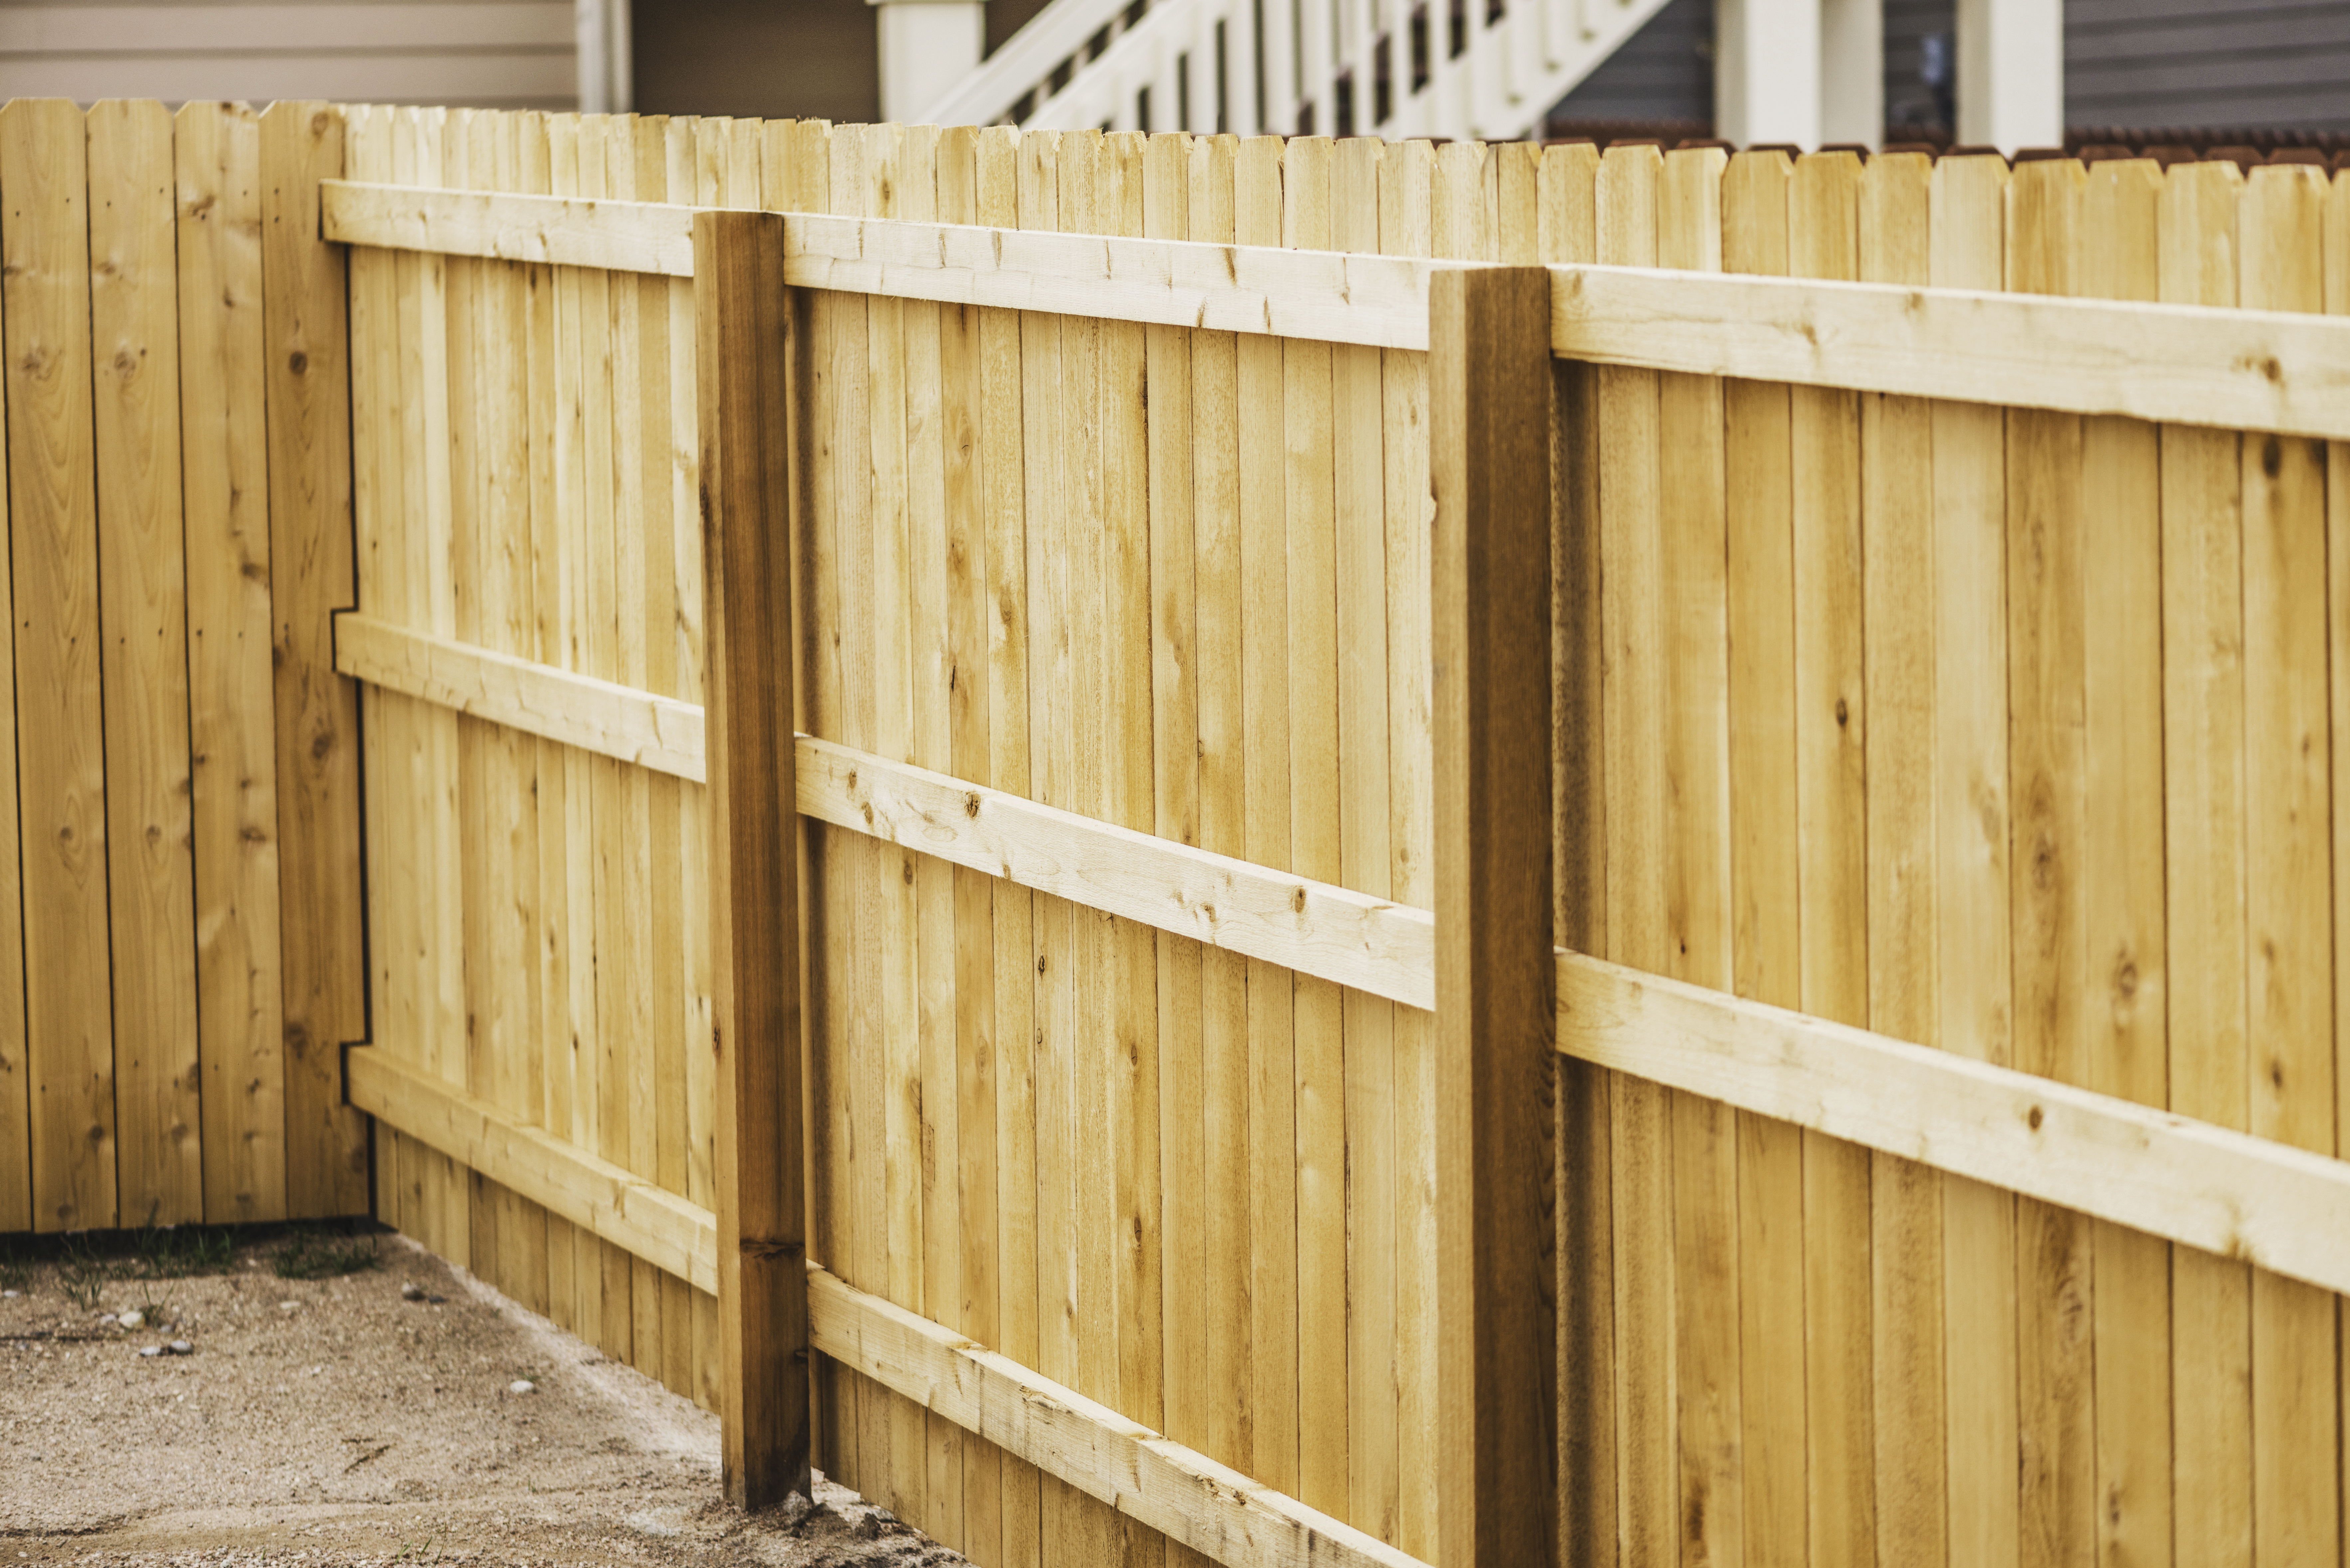 How to Protect Wooden Fence Posts From Rotting | Home Guides